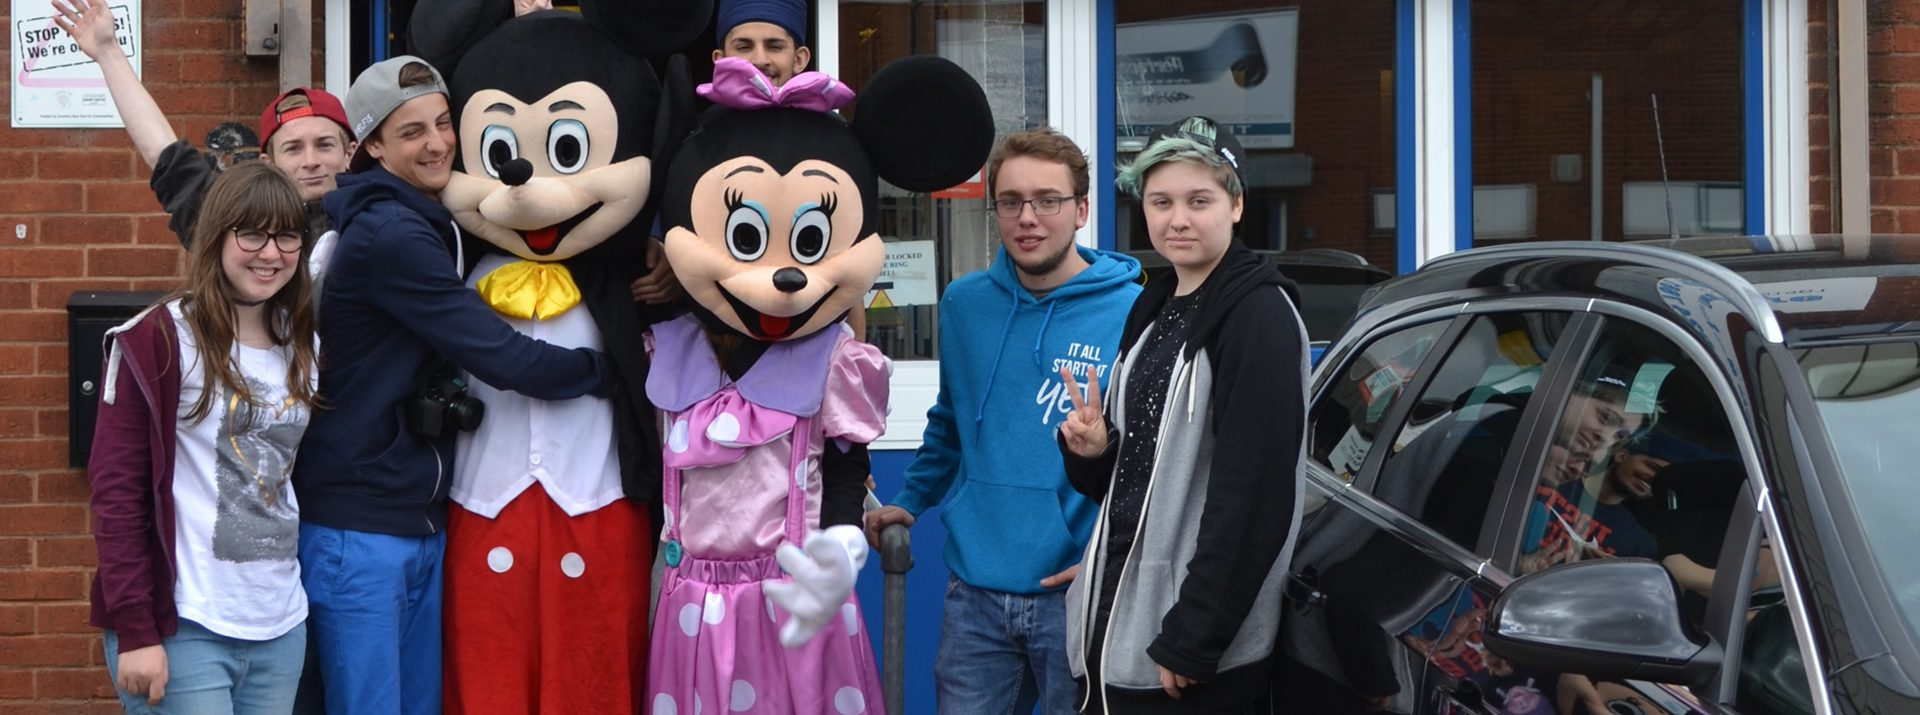 Fundraising with Mickey & Minnie